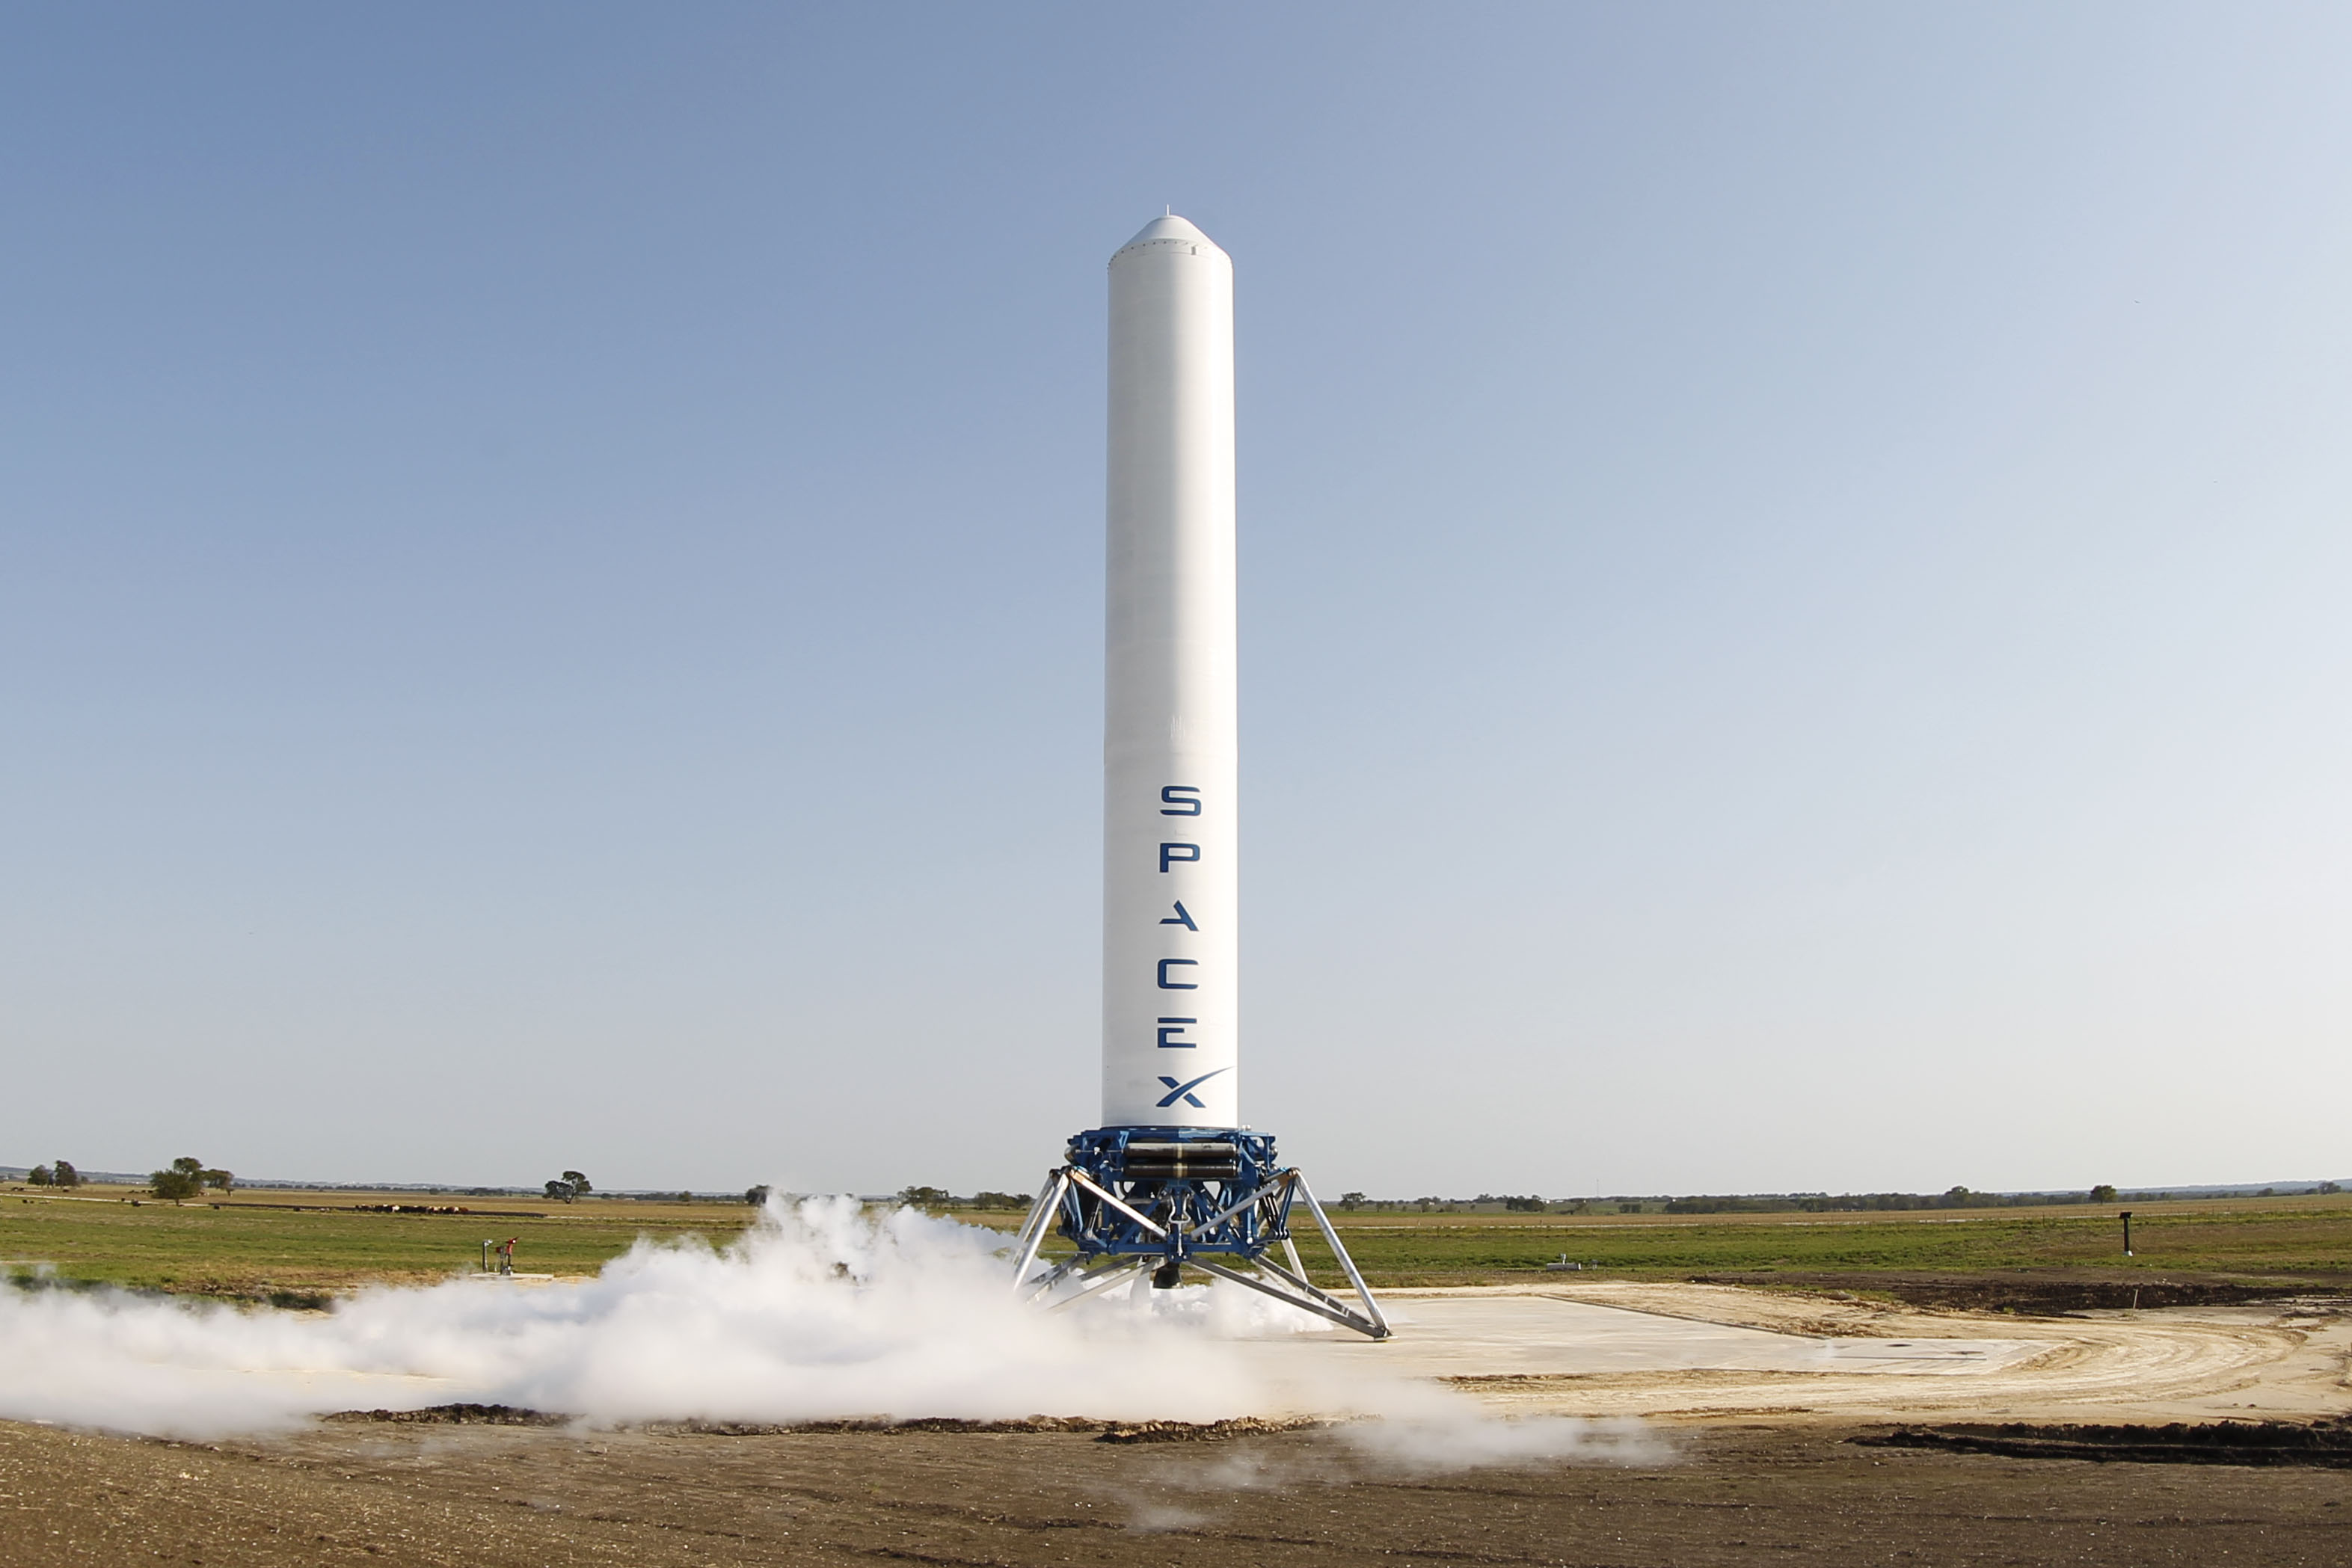 spacex model rocket-#49